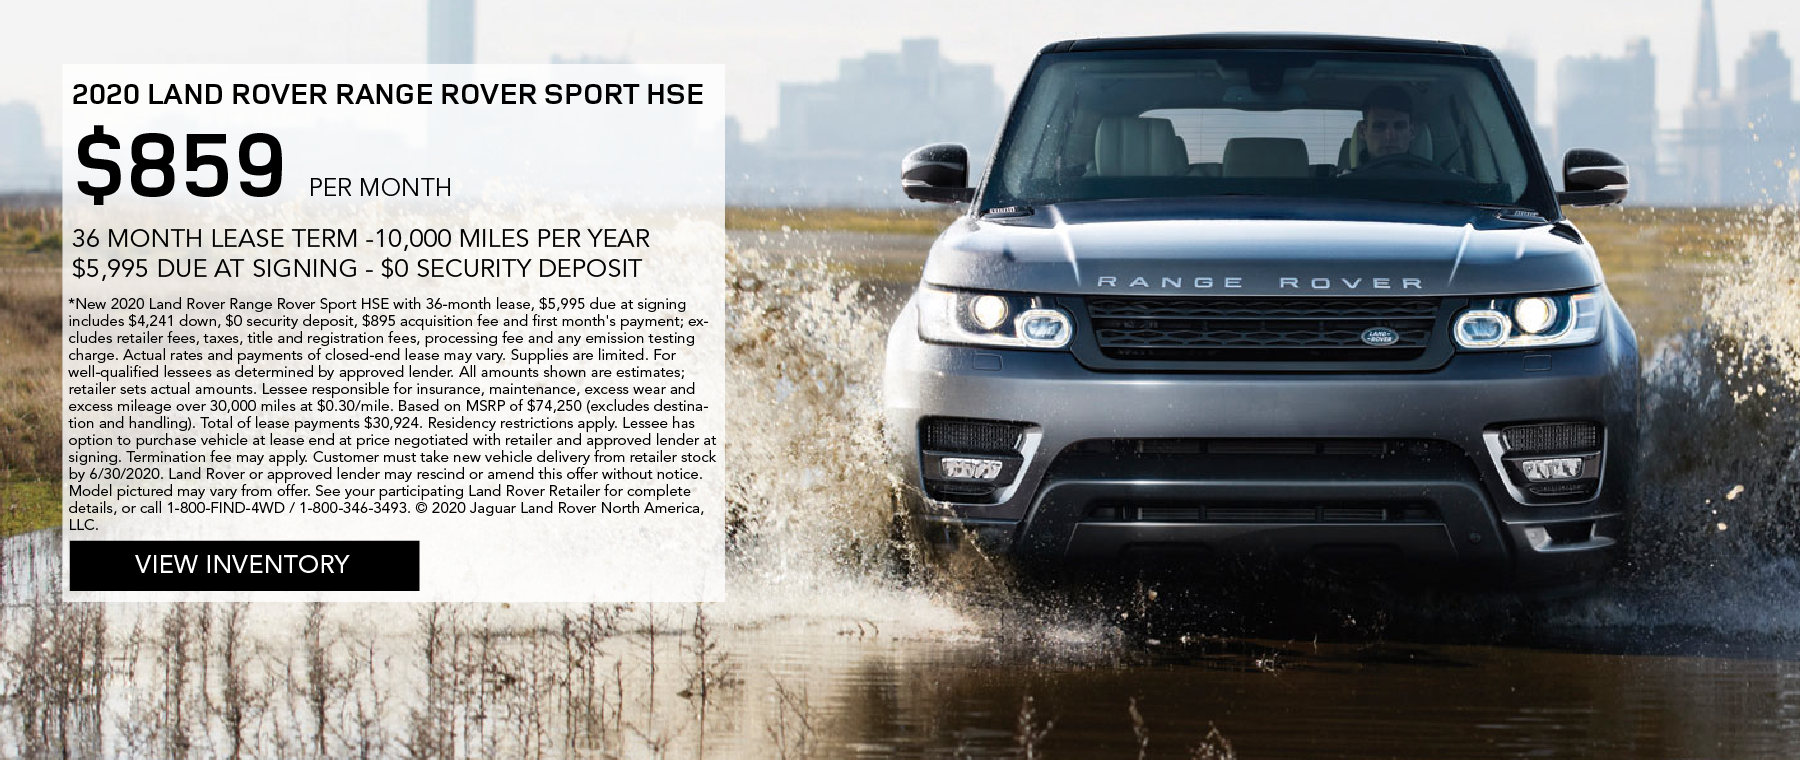 2020 RANGE ROVER SPORT HSE. $859 PER MONTH. 36 MONTH LEASE TERM. $5,995 CASH DUE AT SIGNING. $0 SECURITY DEPOSIT. 10,000 MILES PER YEAR. EXCLUDES RETAILER FEES, TAXES, TITLE AND REGISTRATION FEES, PROCESSING FEE AND ANY EMISSION TESTING CHARGE. OFFER ENDS 6/30/2020. VIEW INVENTORY. SILVER RANGE ROVER SPORT DRIVING INTO PUDDLE NEAR CITY.